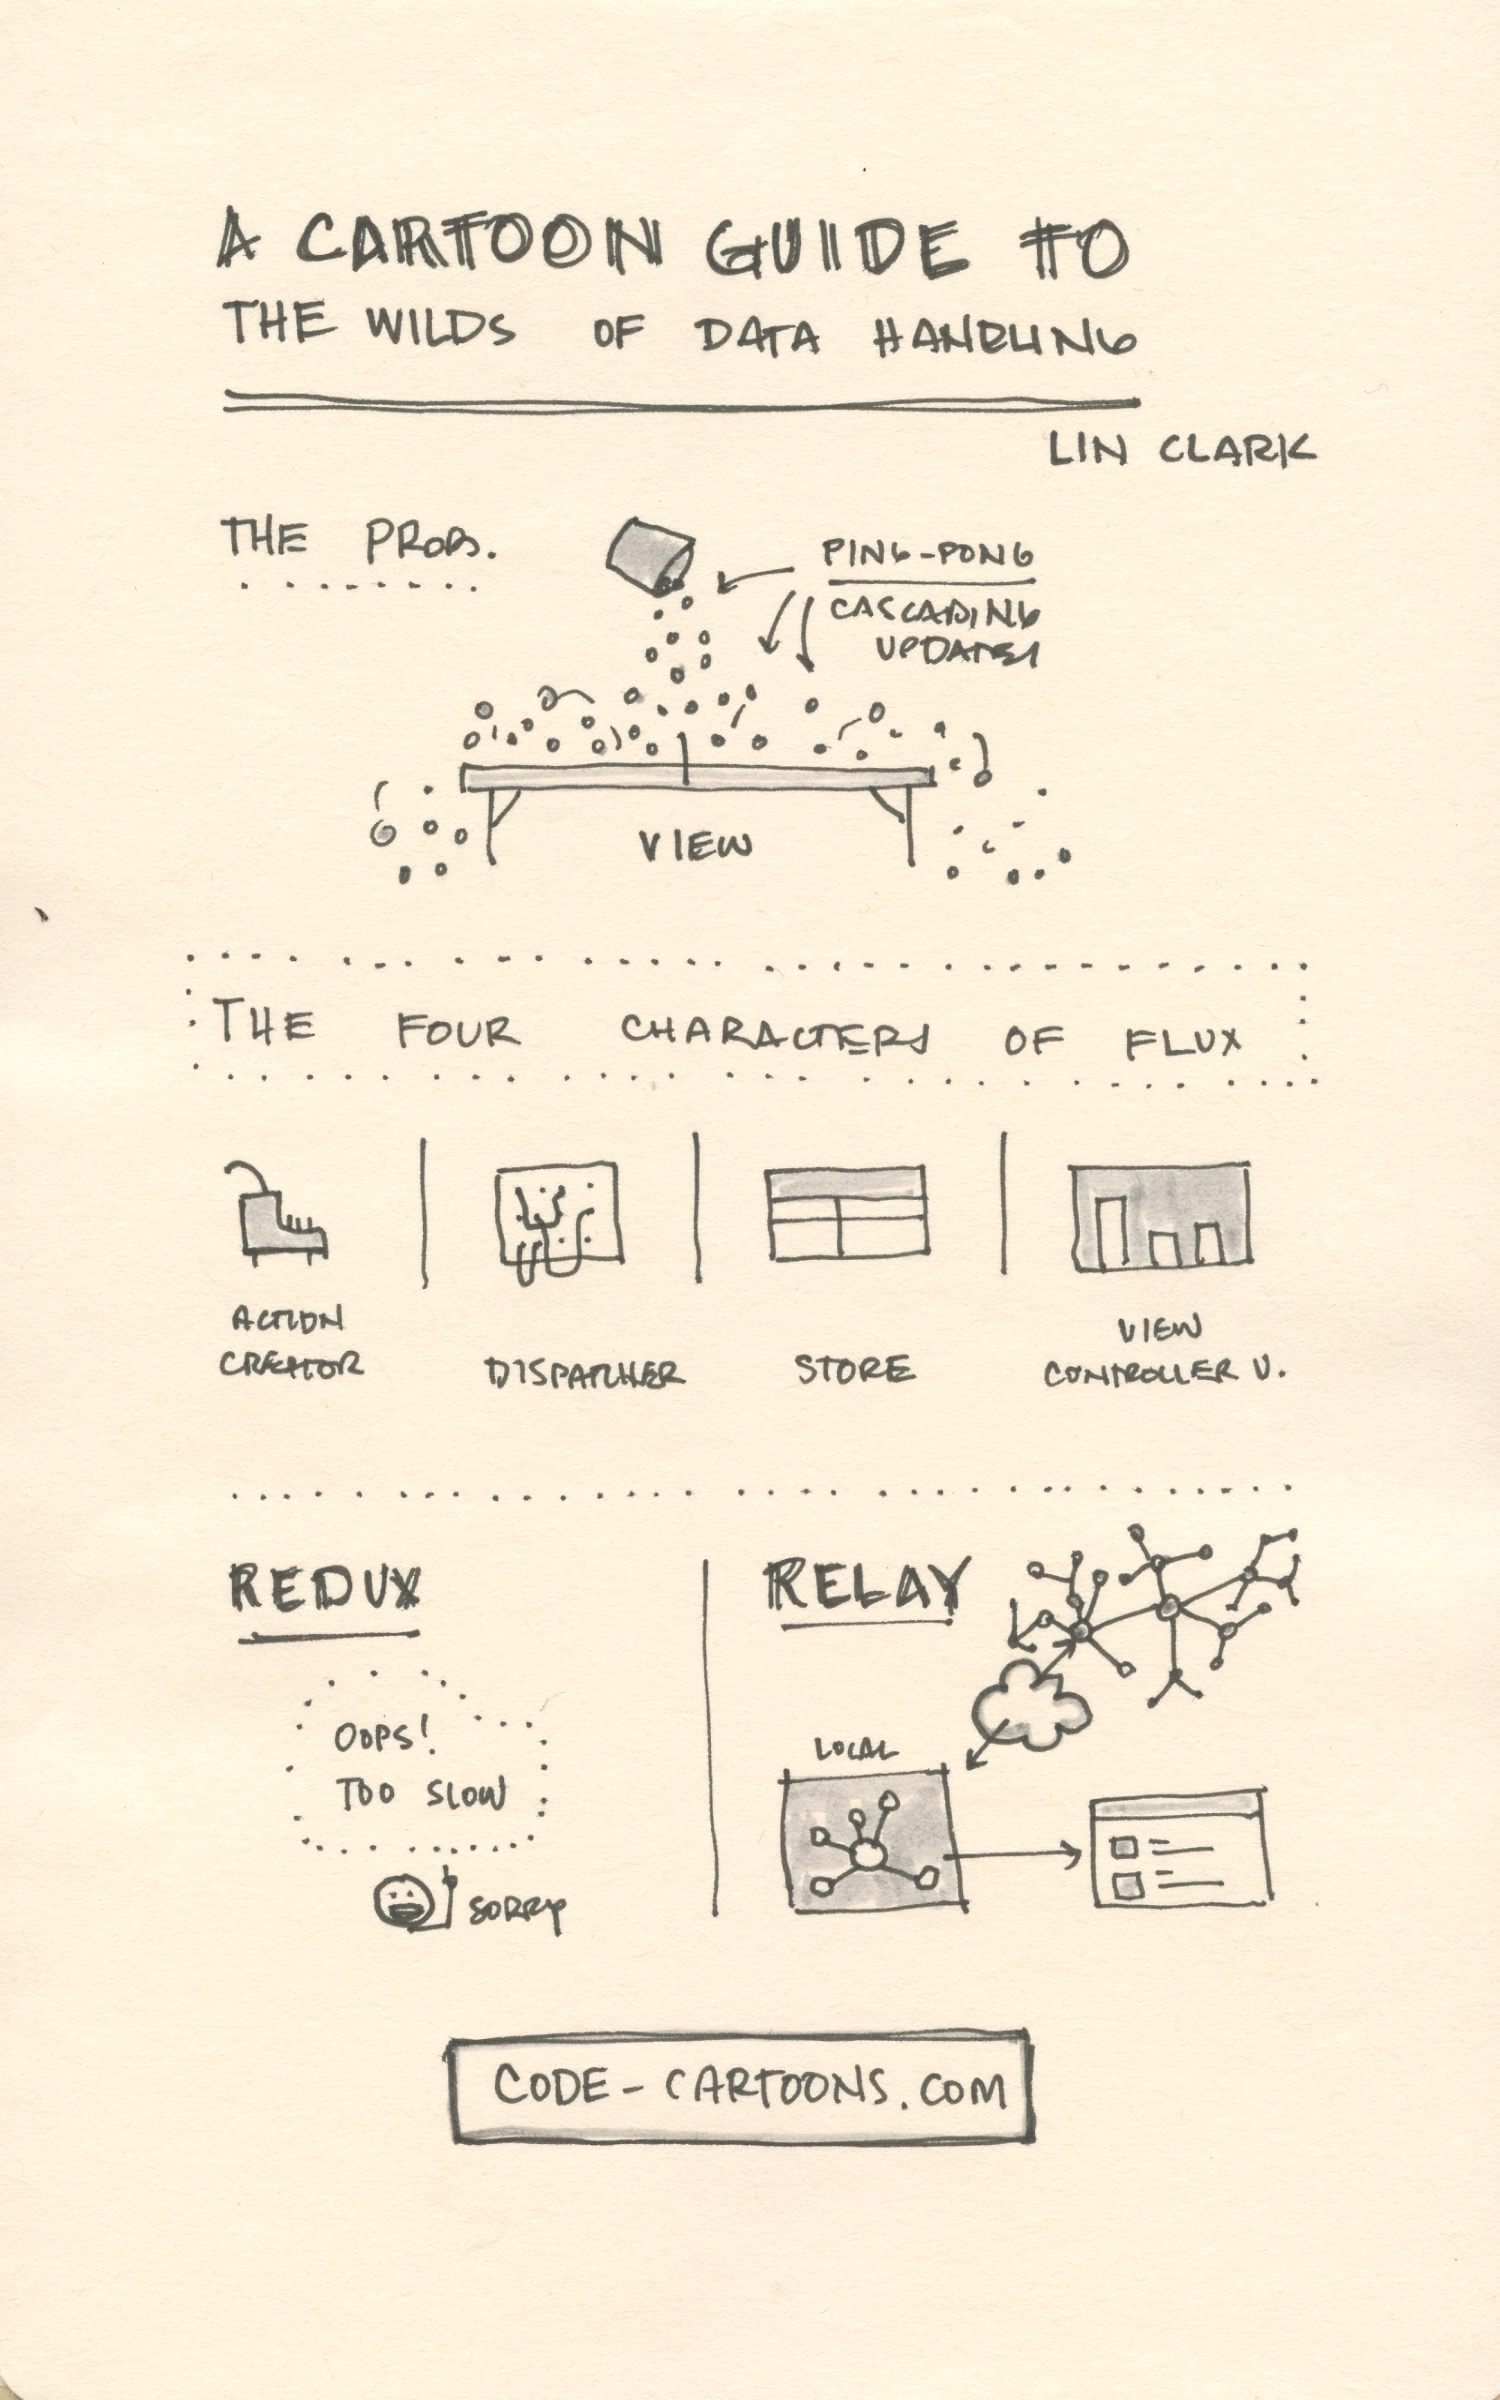 2016-reactjs-conf_04_a-cartoon-guide-to-the-wilds-of-data-handling_lin-clark_@linclark.jpeg